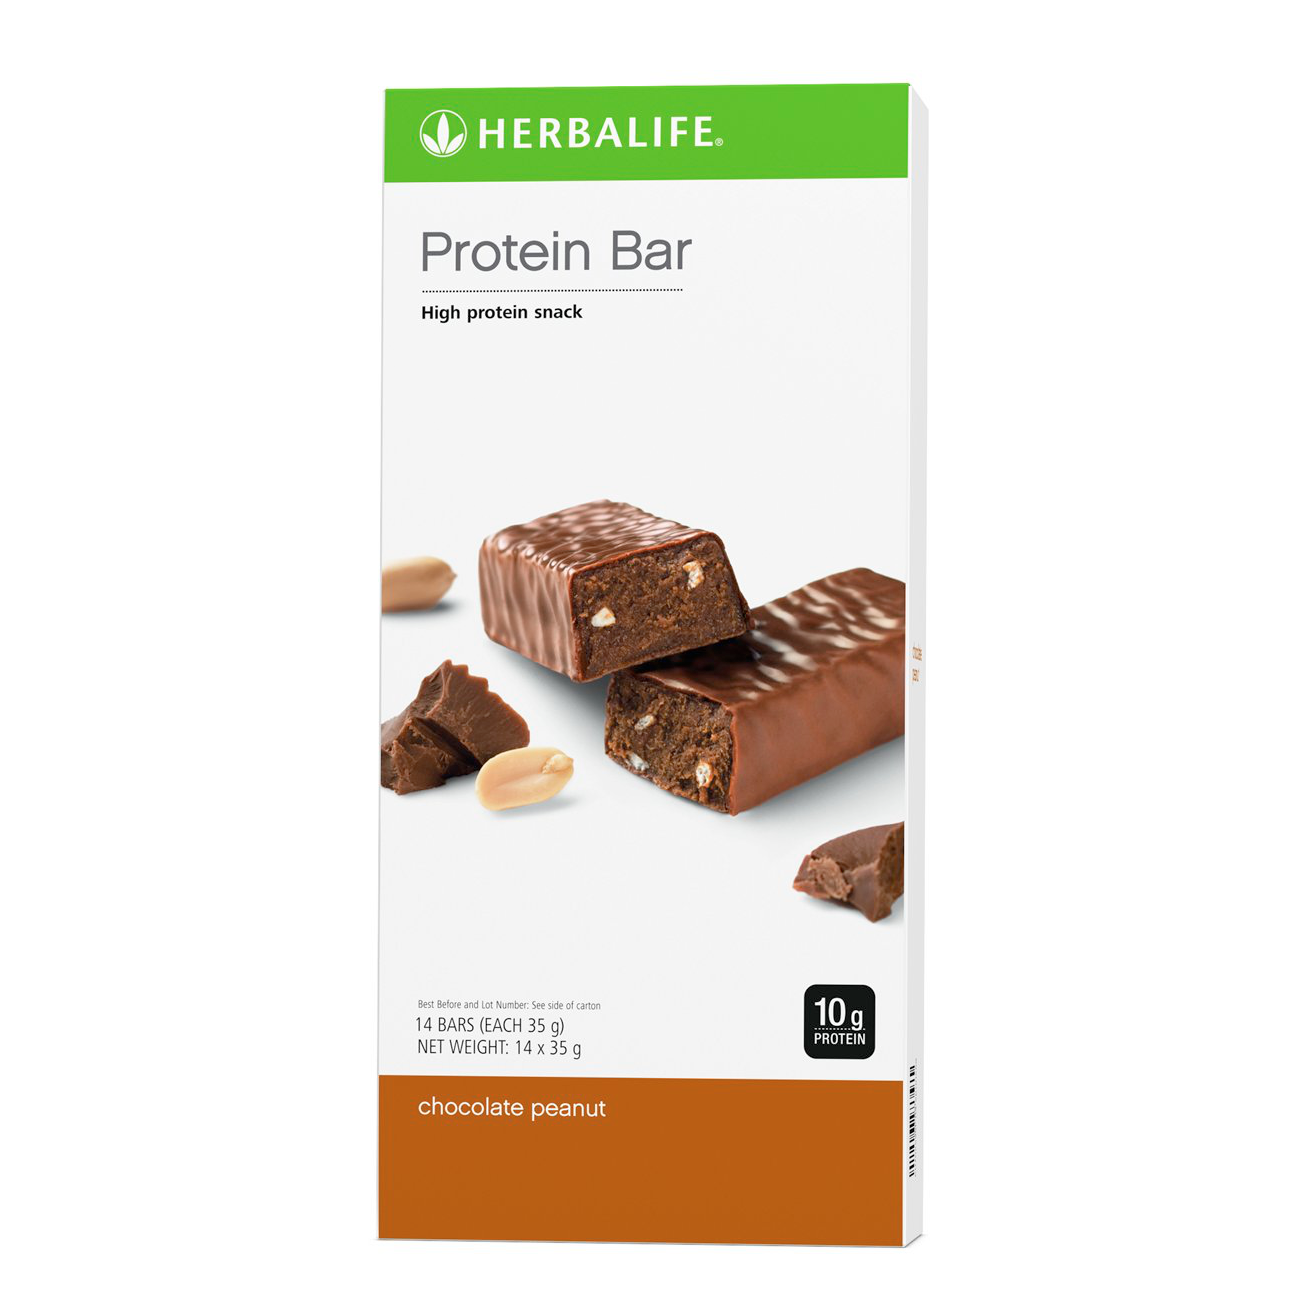 Protein Bars  Chocolate Peanut Flavoured product shot